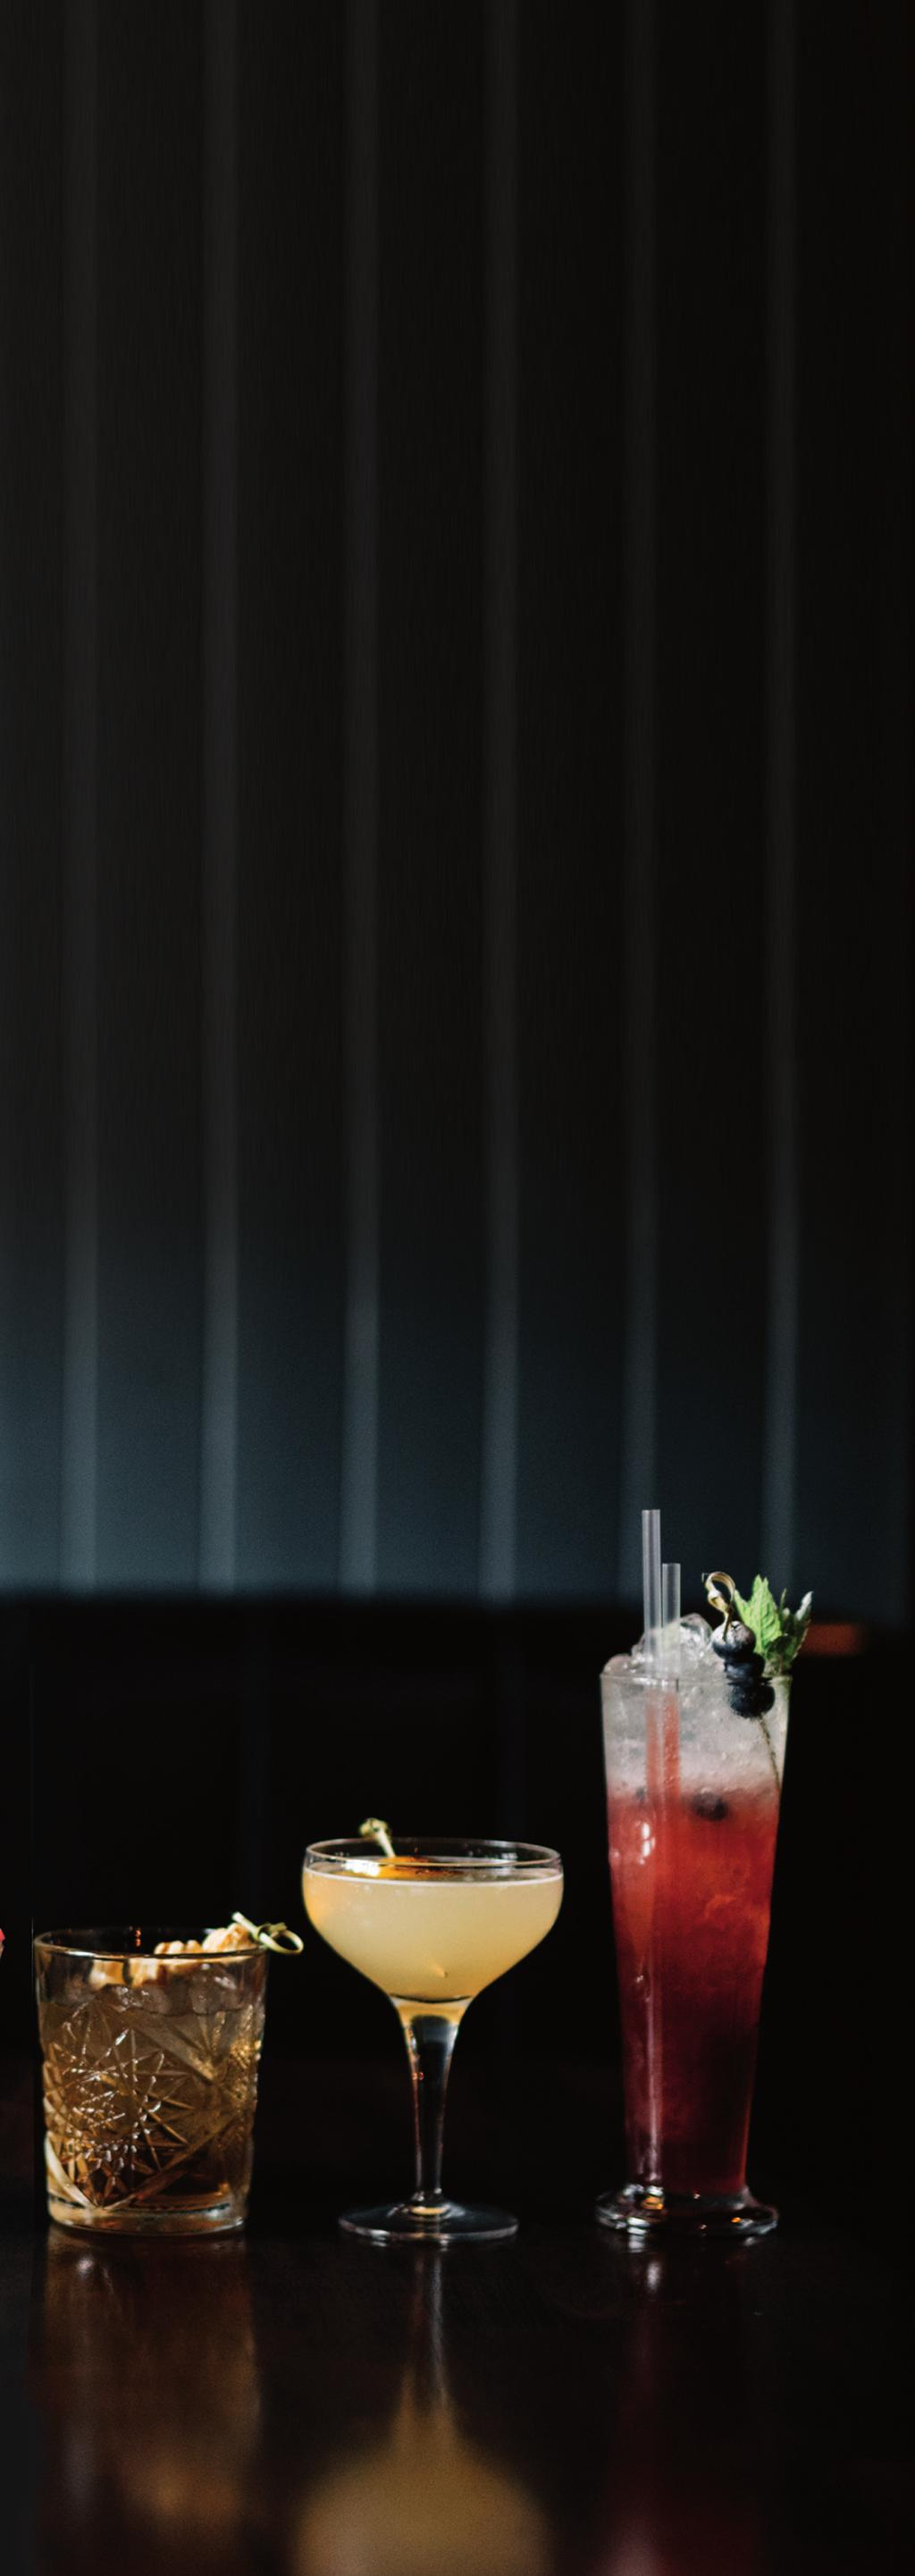 Long Island Iced Tea ABSOLUT VODKA, BEEFEATER GIN, HAVANA 3YR OLD RUM, TEQUILA, TRIPLE SEC, SUGAR SYRUP, LEMON JUICE, COCA-COLA Flavoured Margarita TEQUILA, TRIPLE SEC, LIME JUICE, SUGAR SYRUP Ask